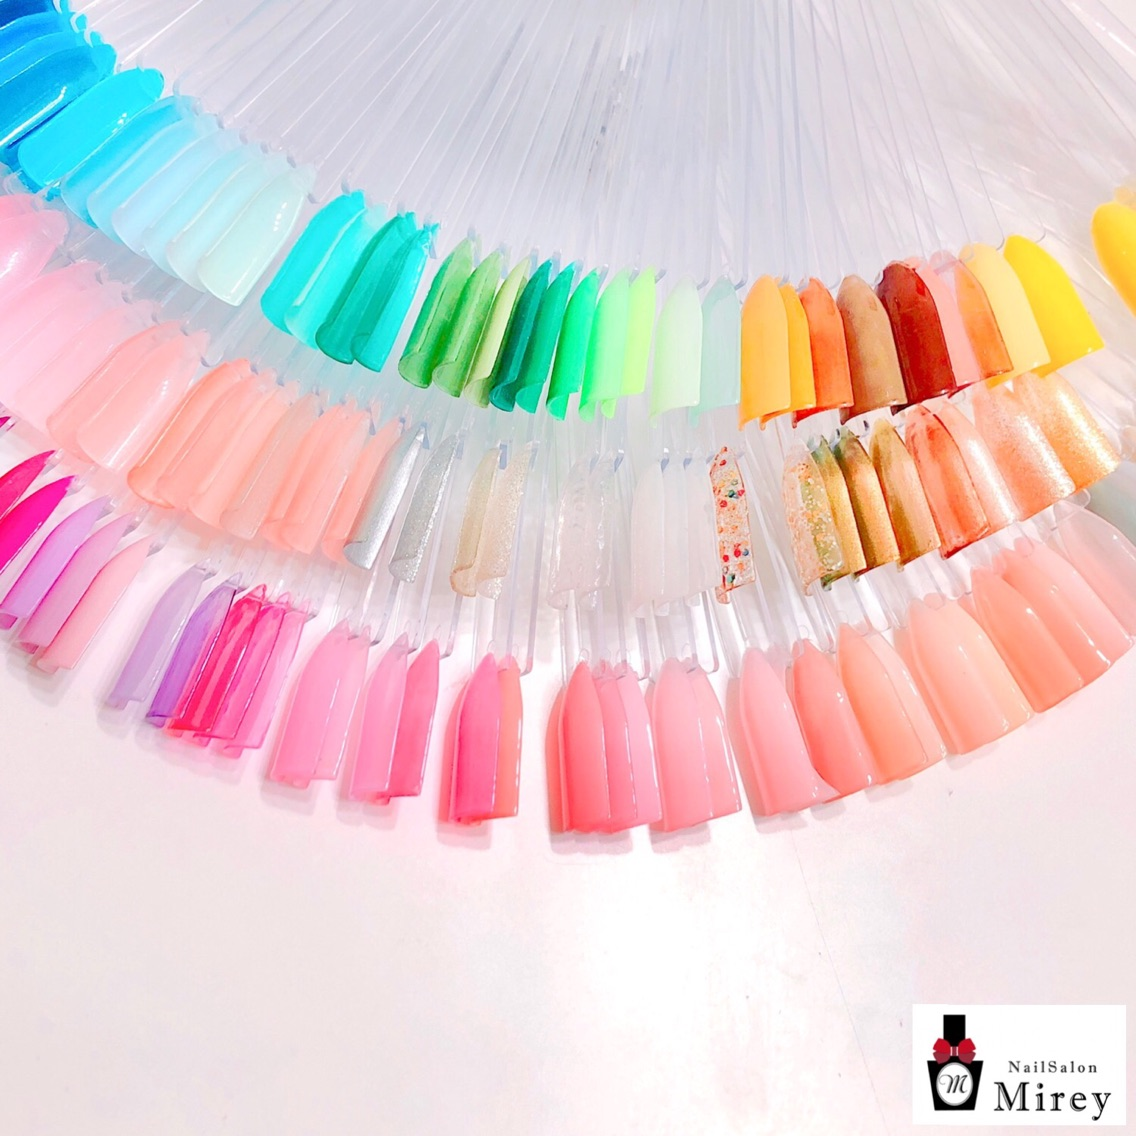 Nail  Salon Mirey